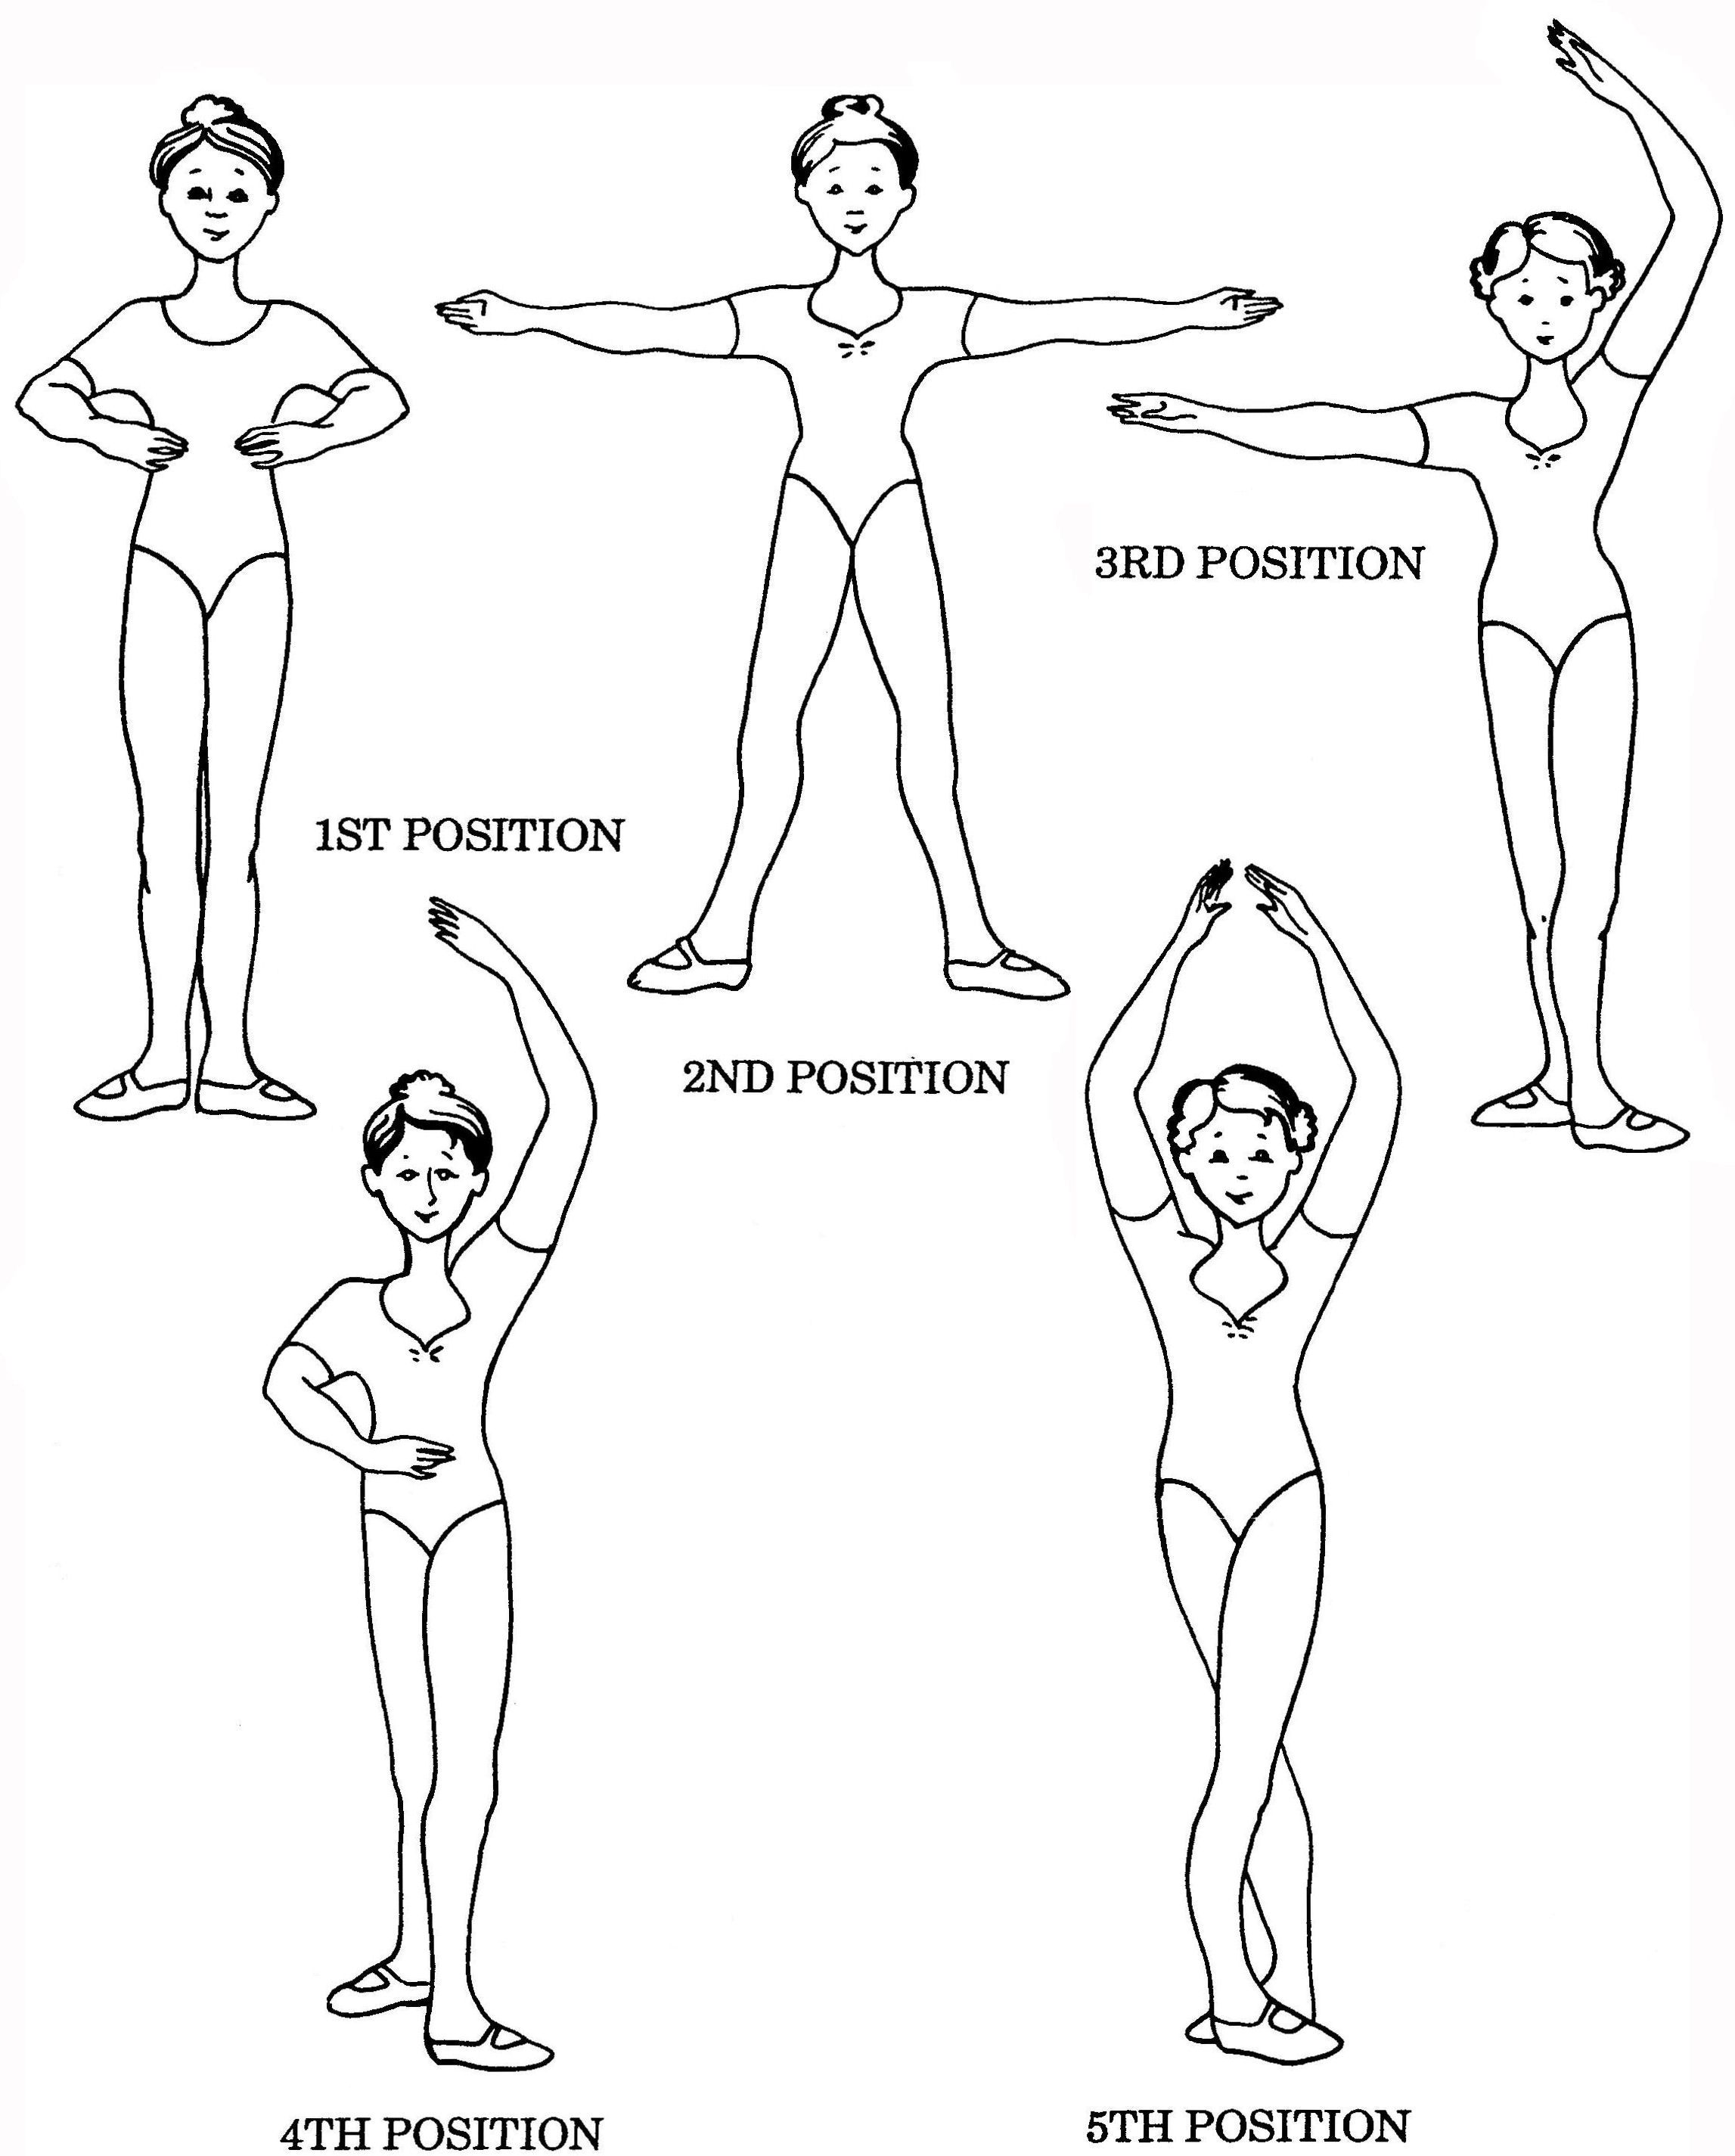 All 5 Ballet Positions